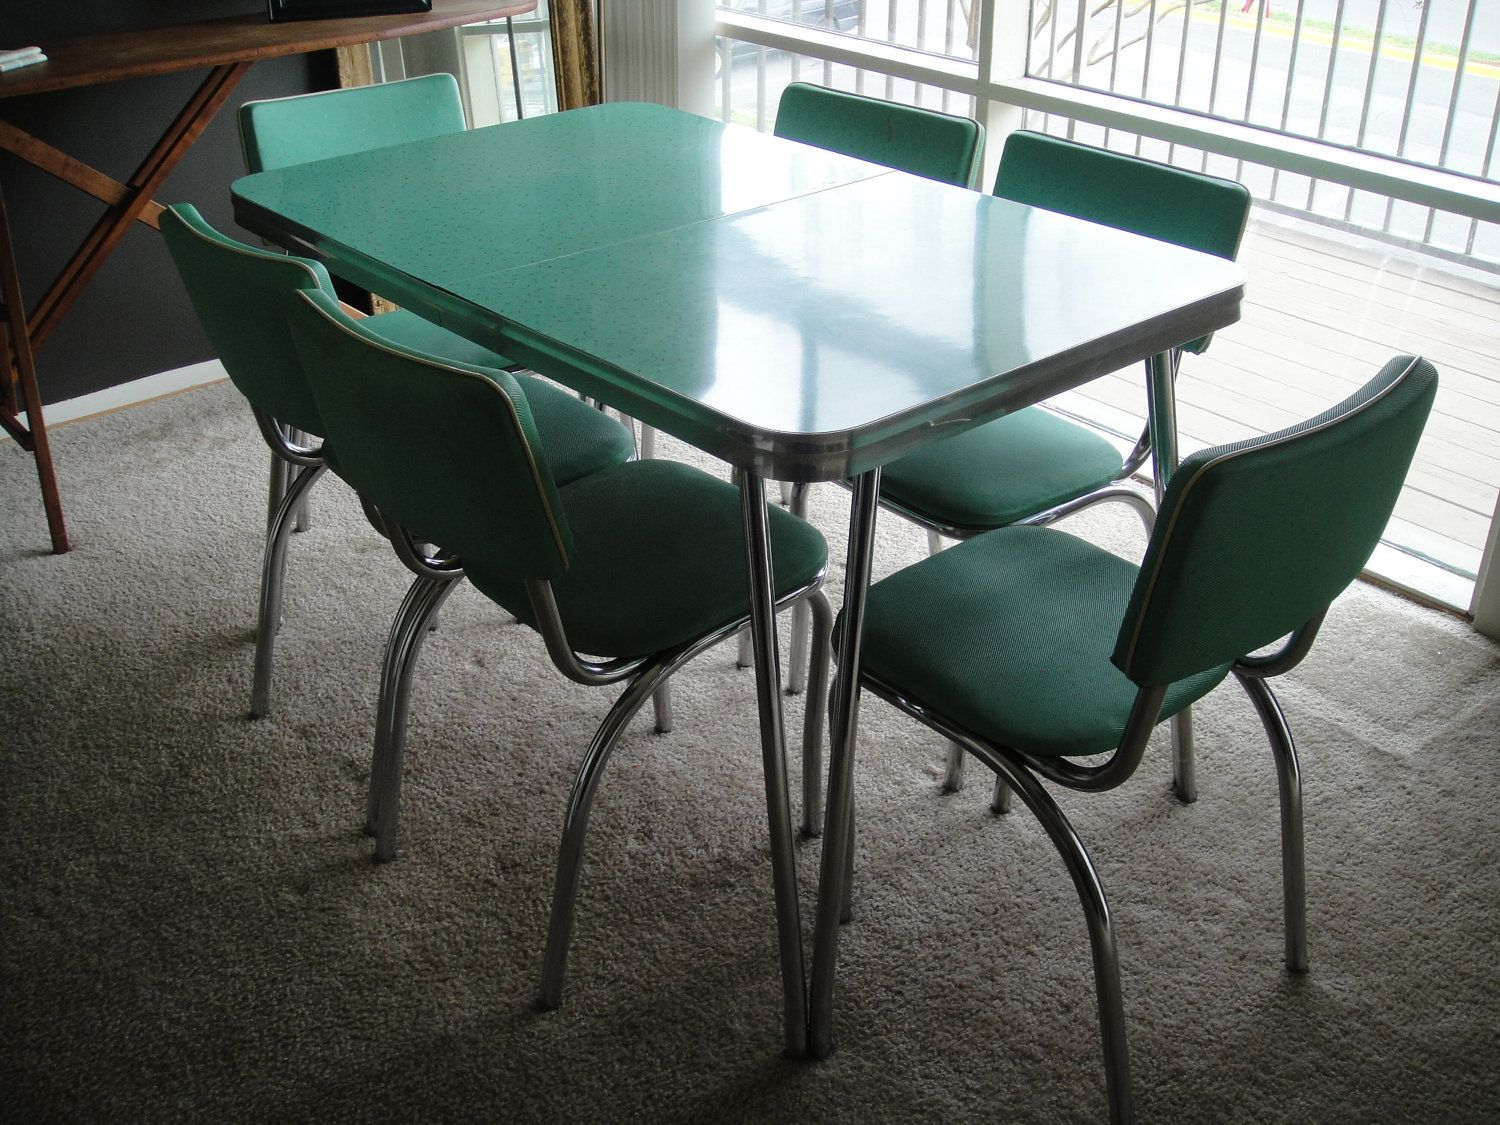 s kitchen table RESERVED s Kitchen Table and Chairs Mint Dining Set with Six Chairs Formica with Chrome Legs and Details PICK UP ONLy